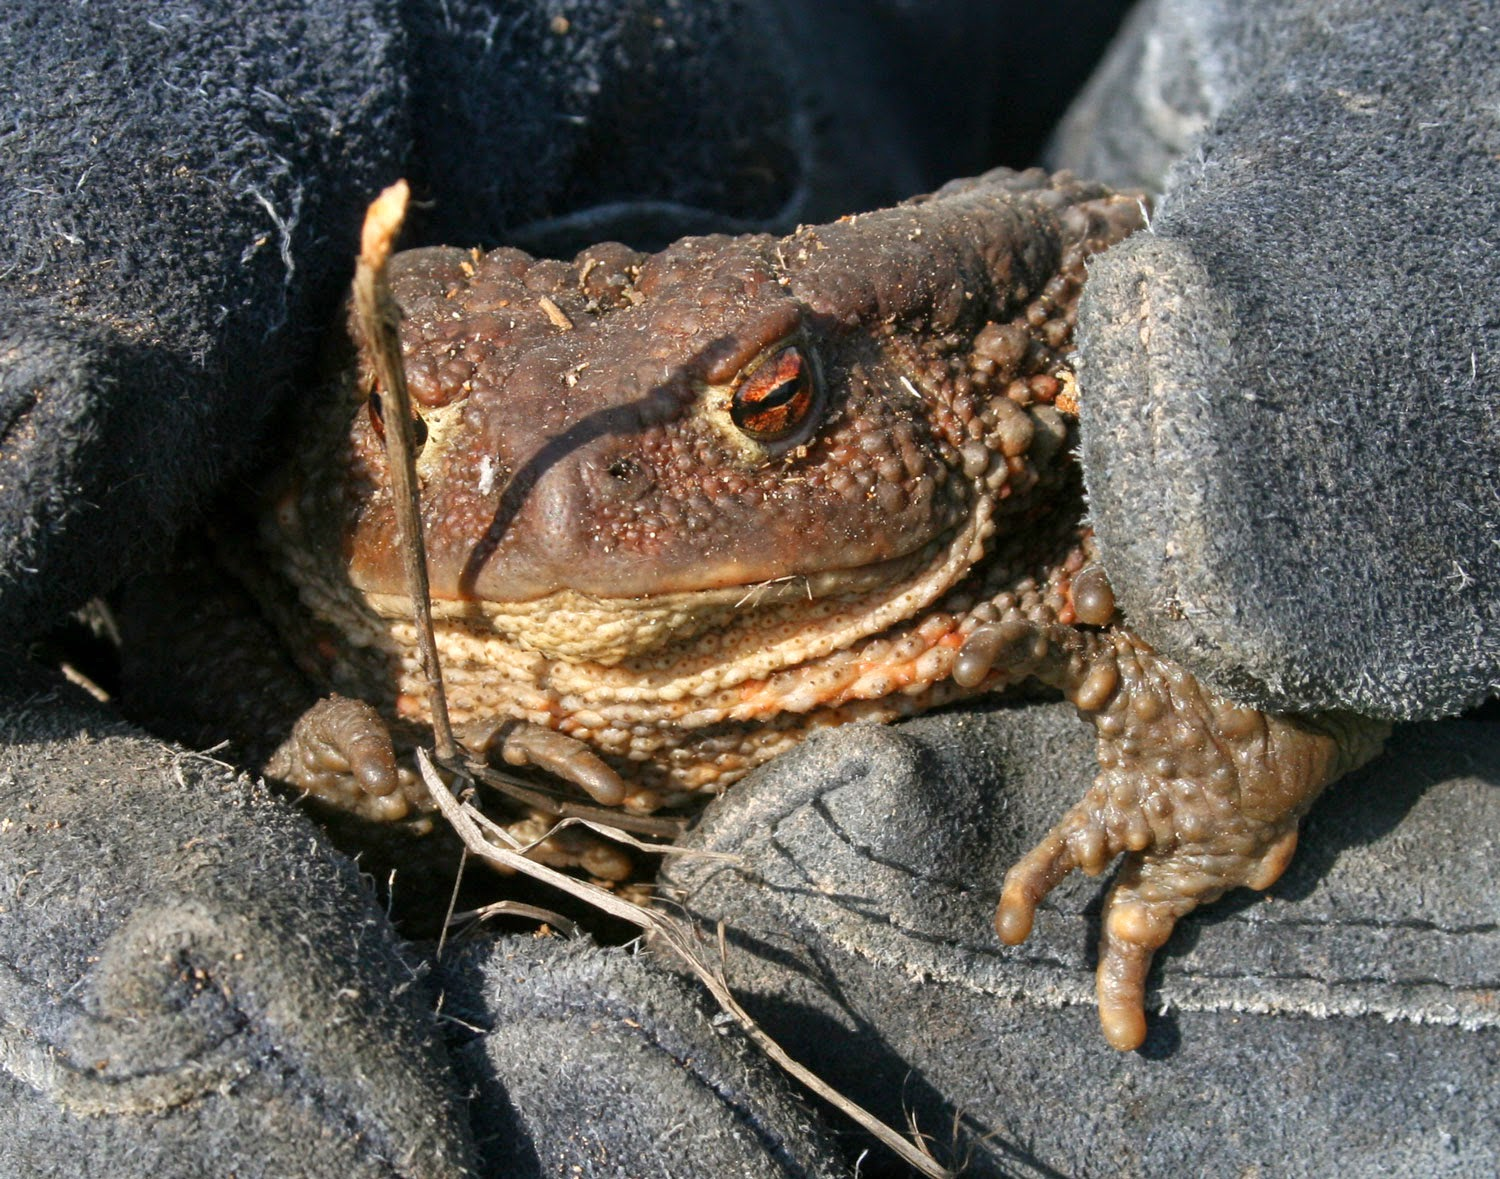 The huge toad we found